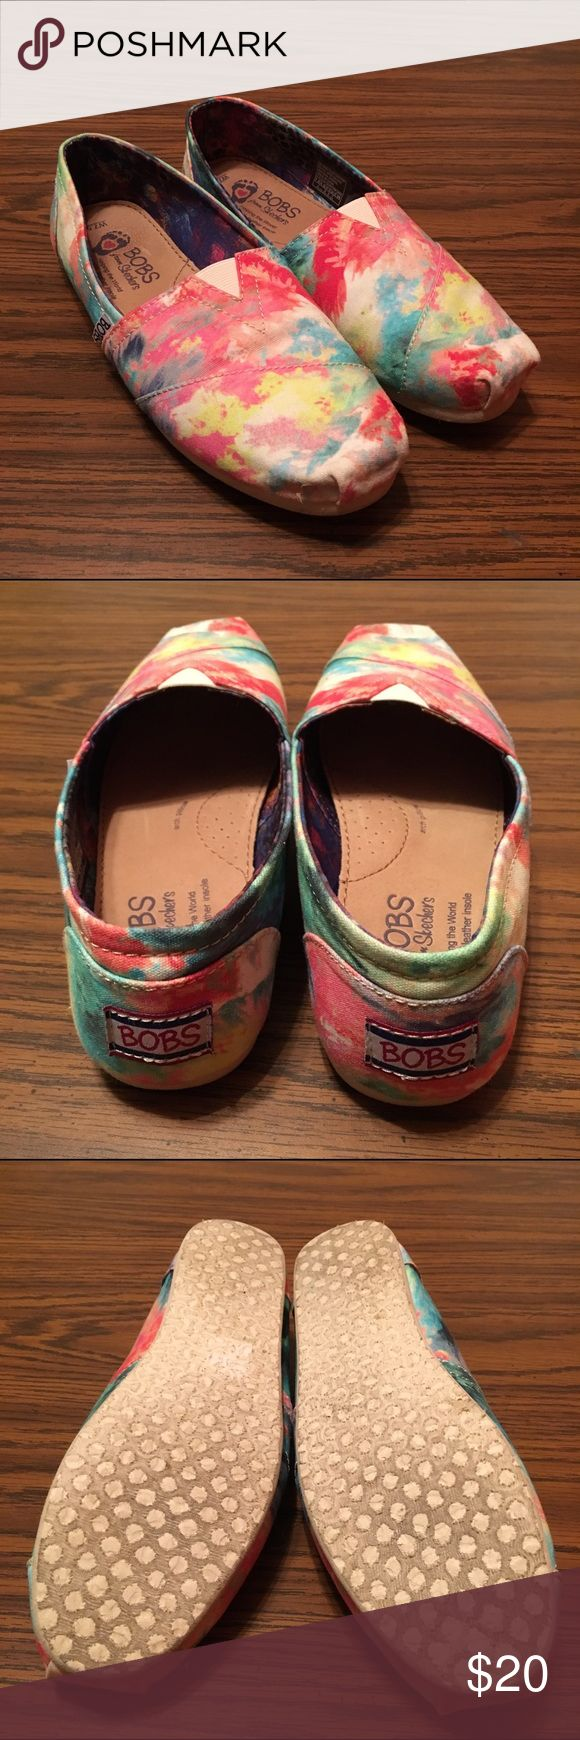 Tye-dye BOBS shoes Cool, fun colors to add style to any outfit. Only worn two or three times. Shoes Flats & Loafers